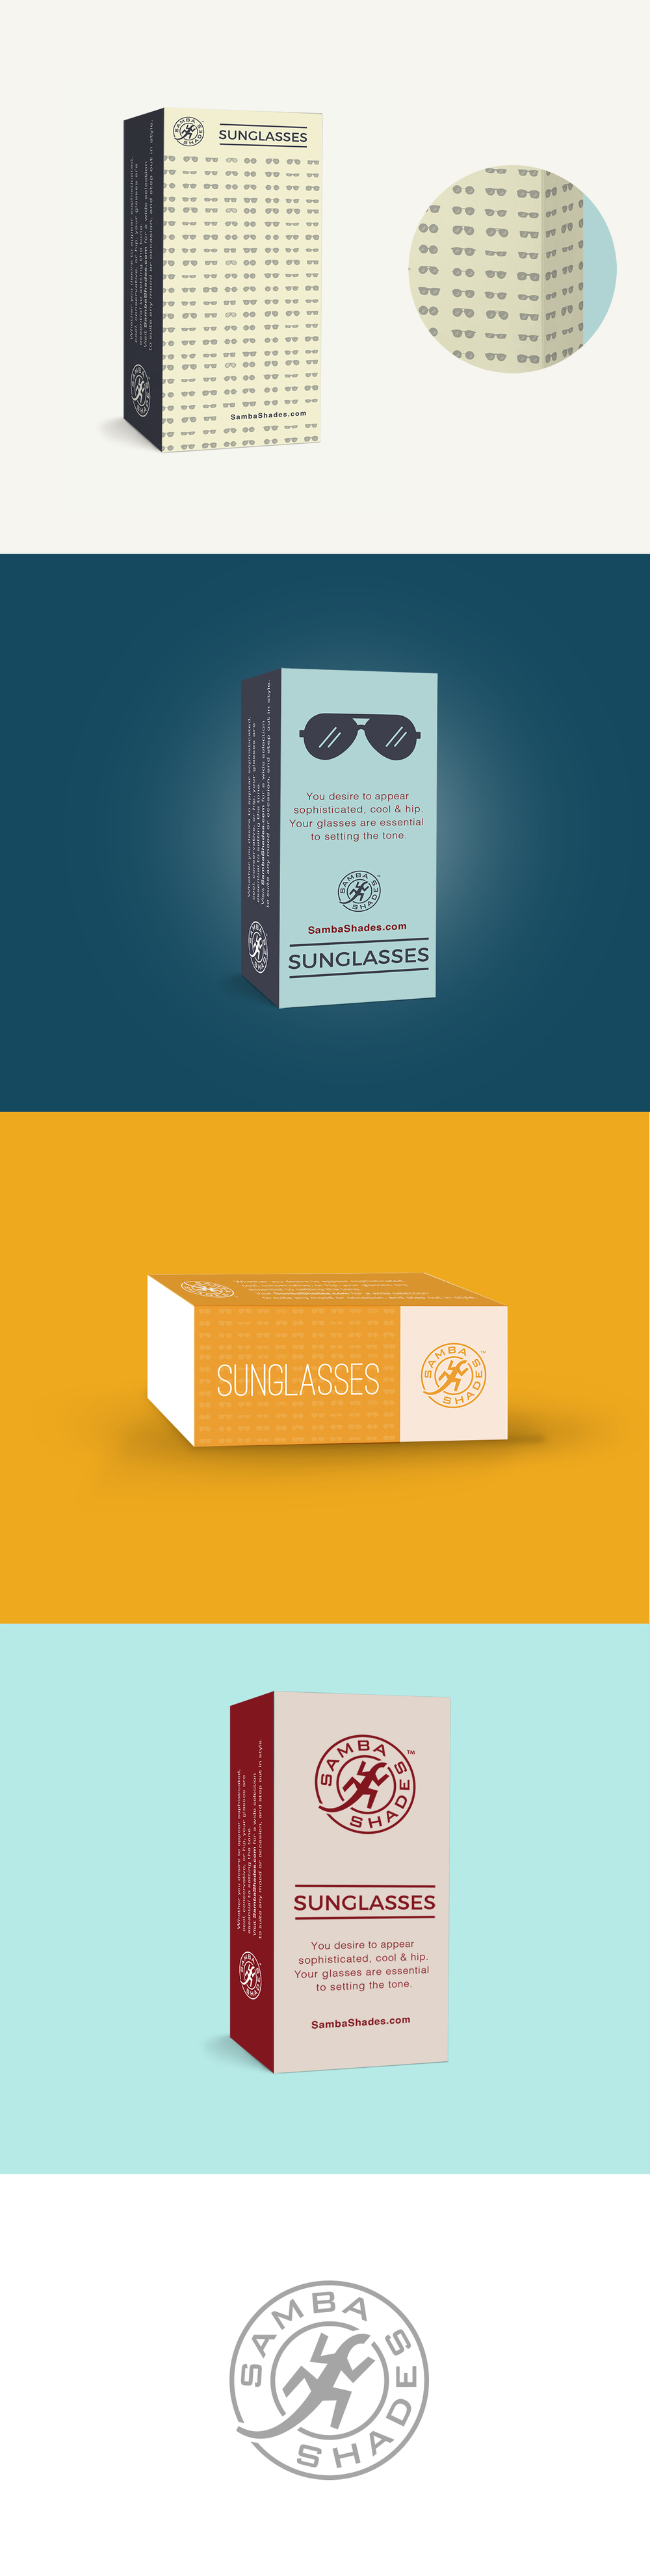 Fun graphic design project for a sunglasses company that needed packaging creative conceptualized and brought to life.